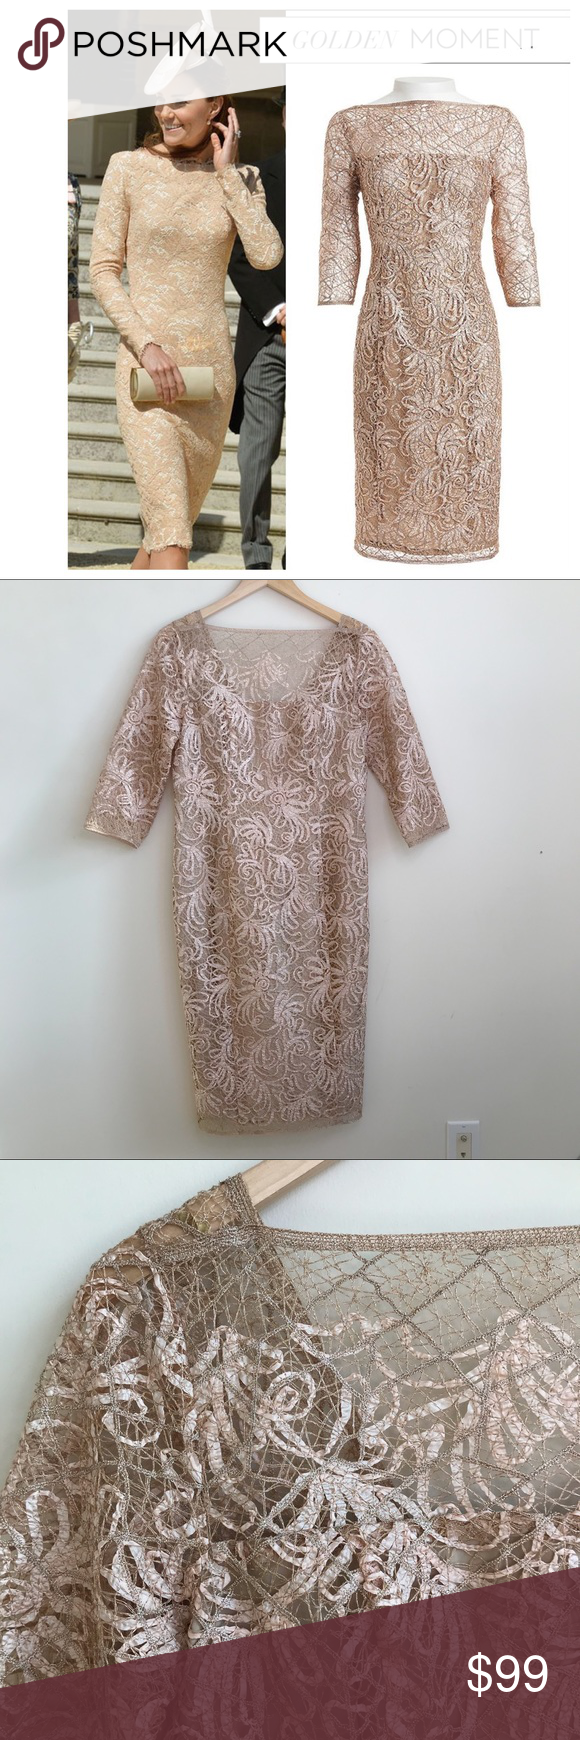 Worth New York Rose Gold Foiled Lace Dress Rose Gold Foiled Lace Dress From Worth New York Size 8 Excellent Pre Owner Condi Lace Dress Clothes Design Dresses